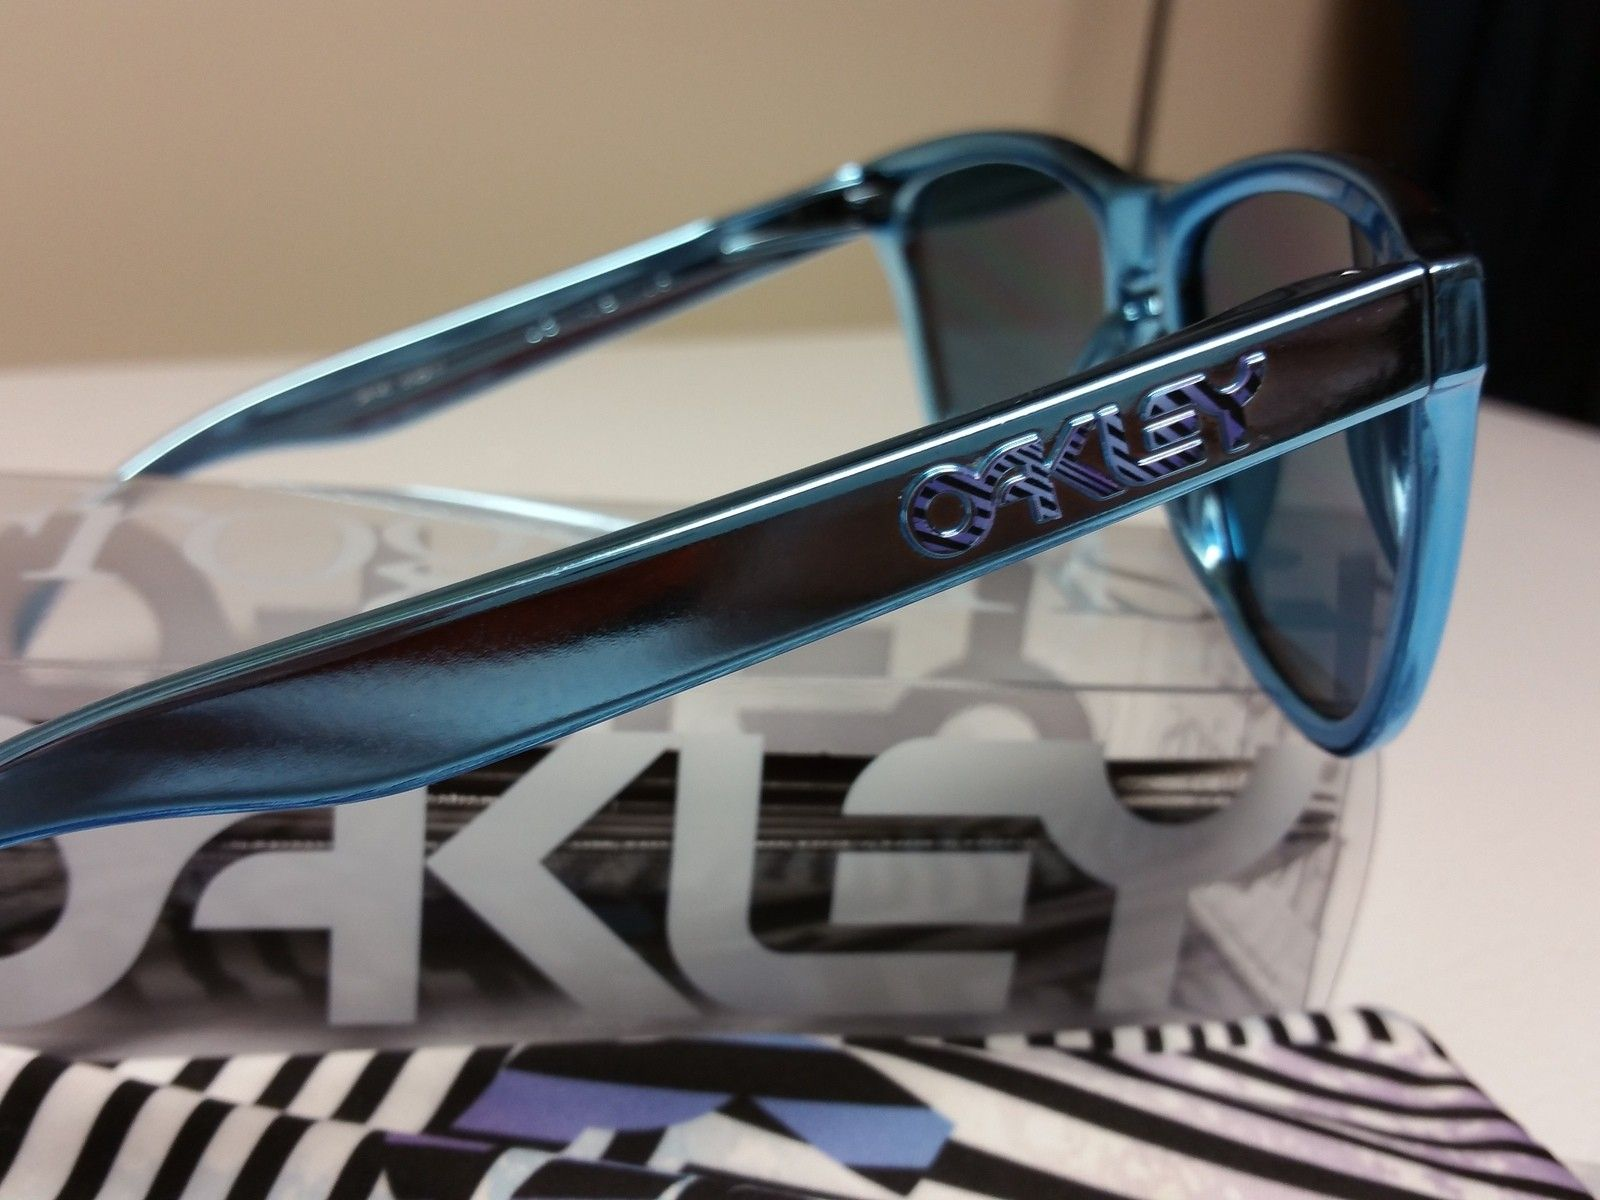 Shaun white blue chrome frogskins - 1449720322376-770233350.jpg